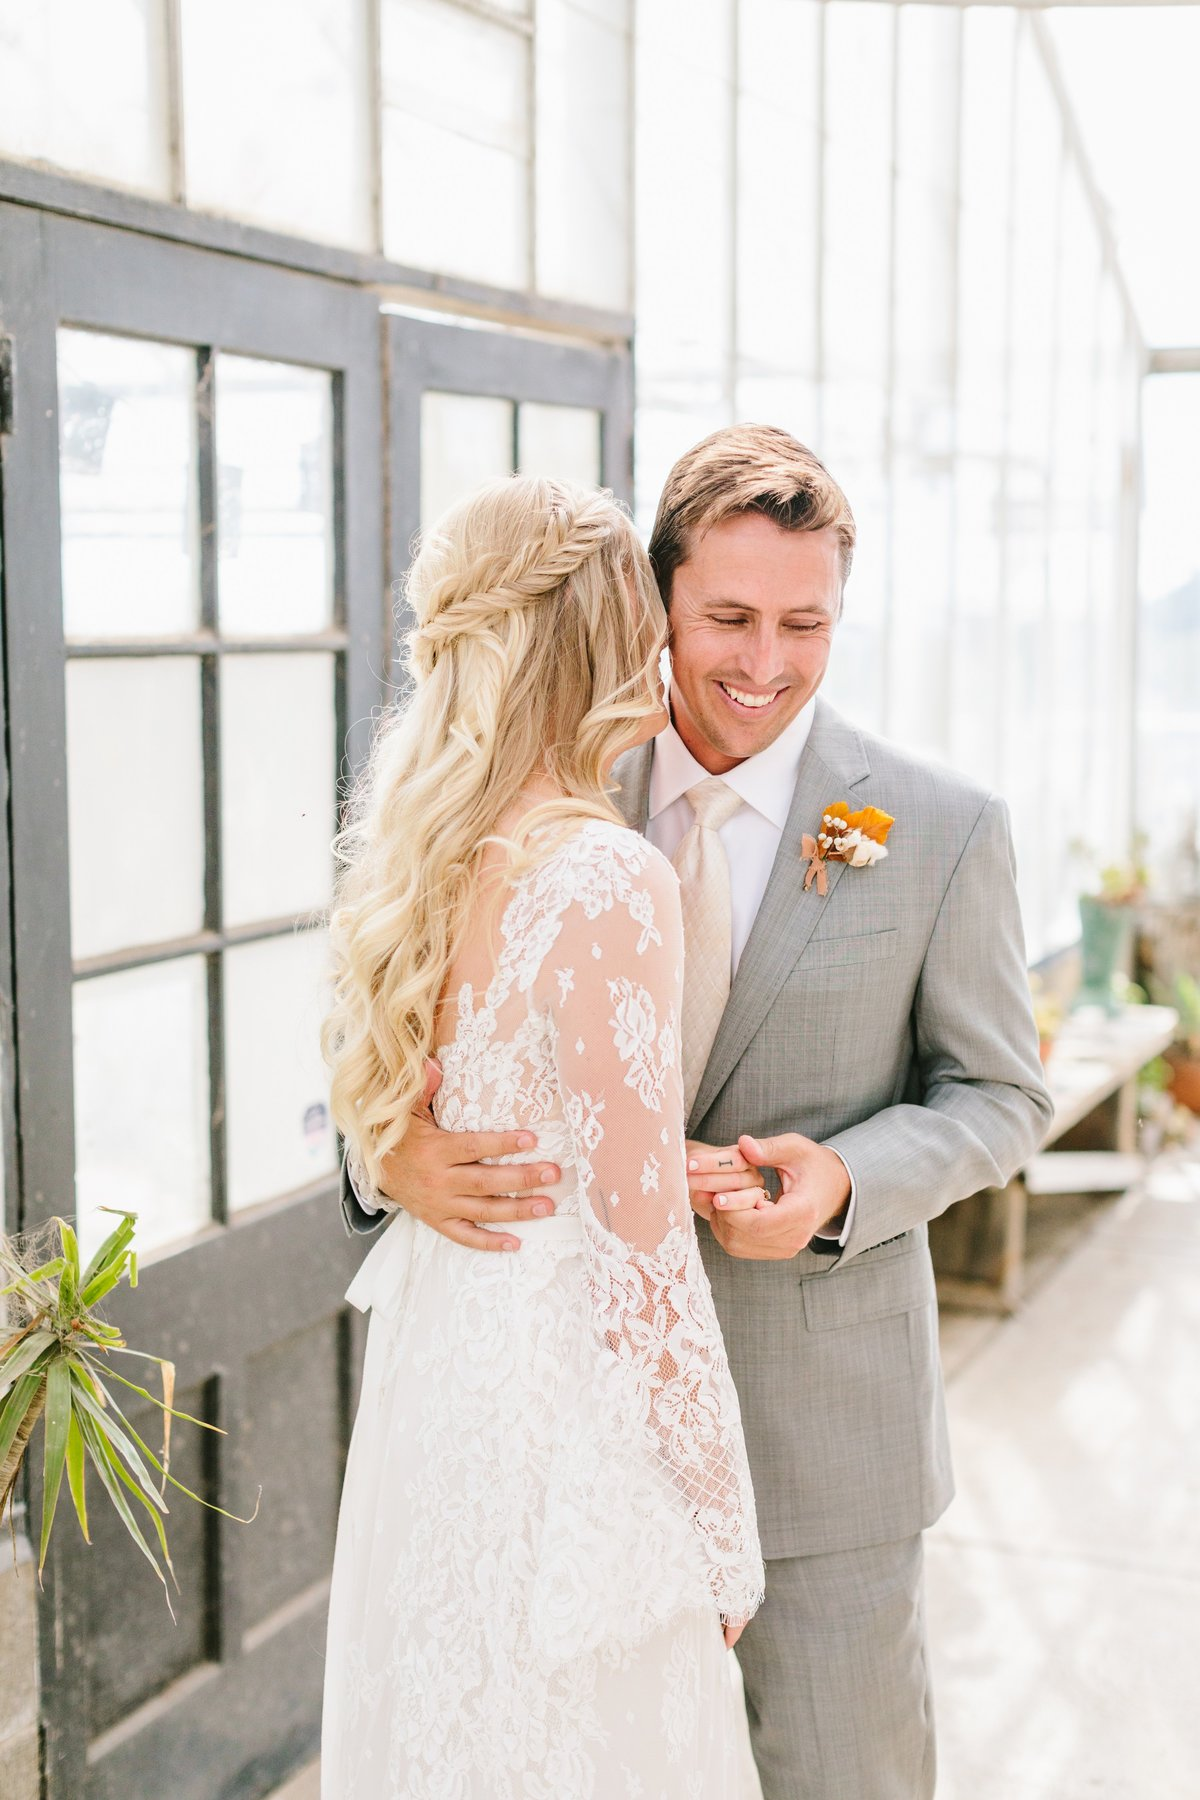 Best California Wedding Photographer-Jodee Debes Photography-126